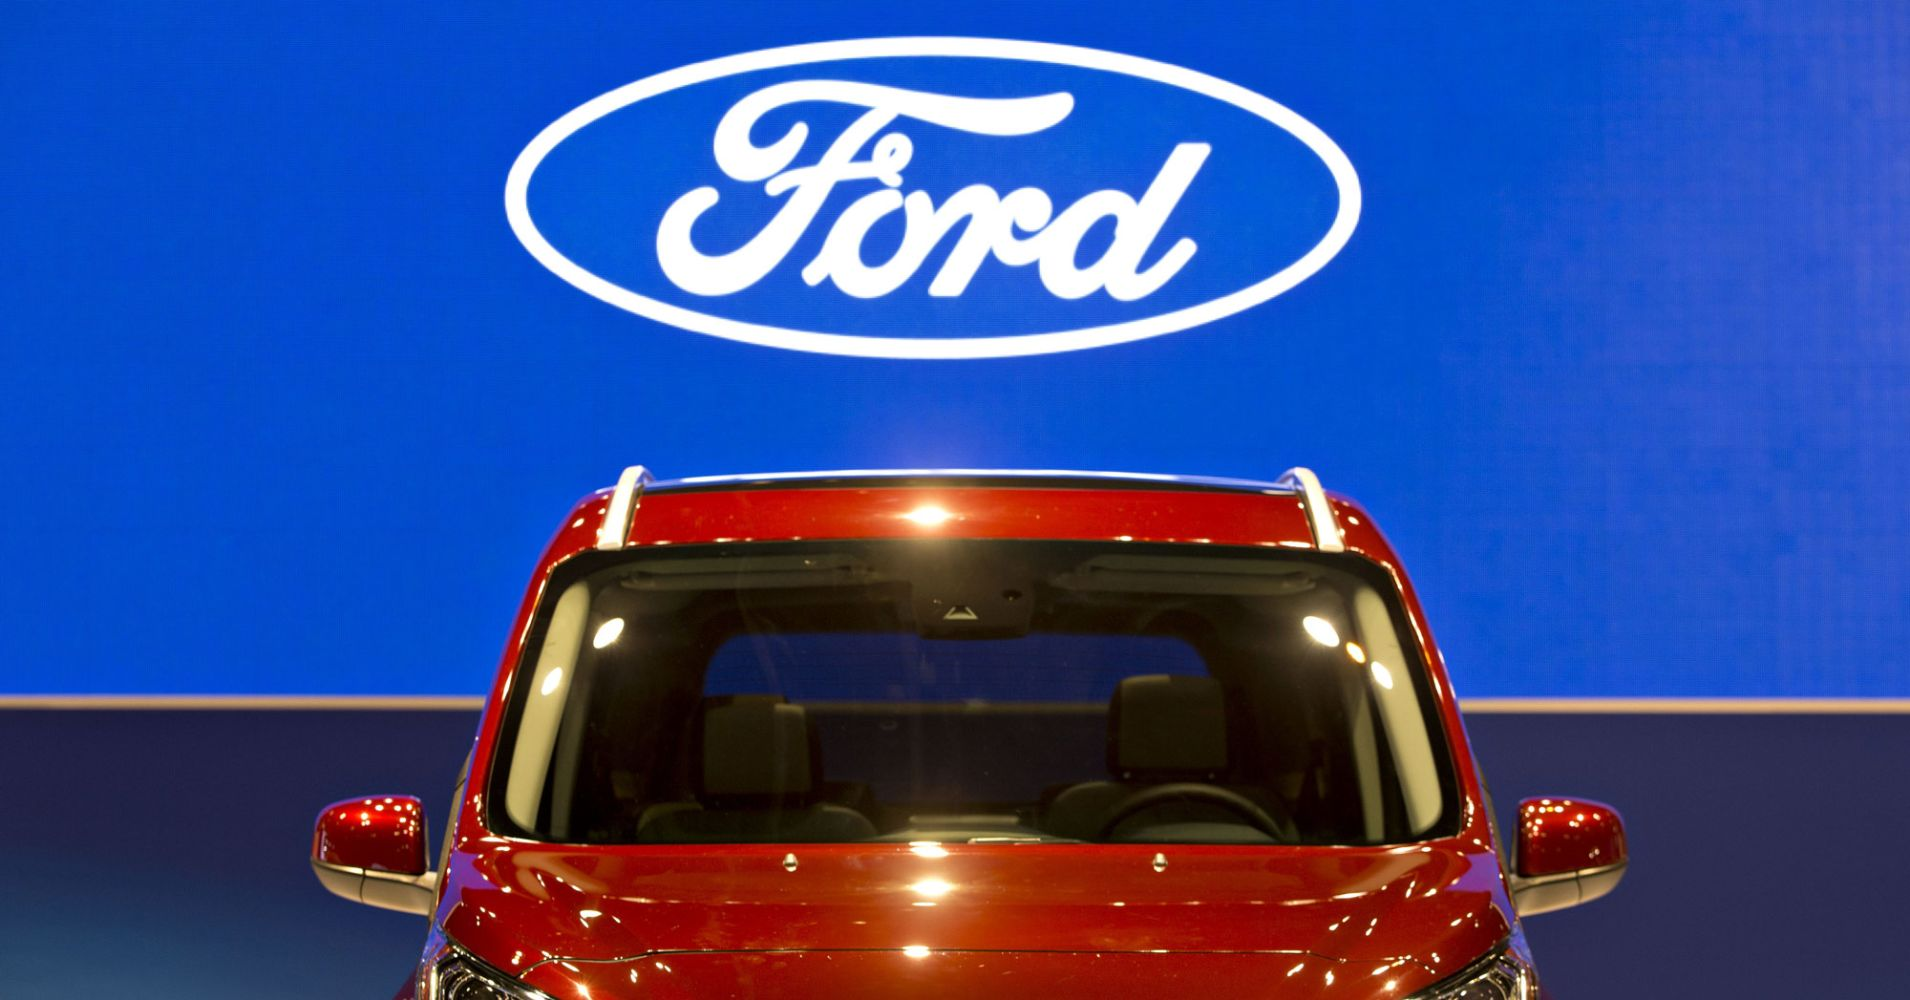 Ford sets up China business as a stand-alone unit